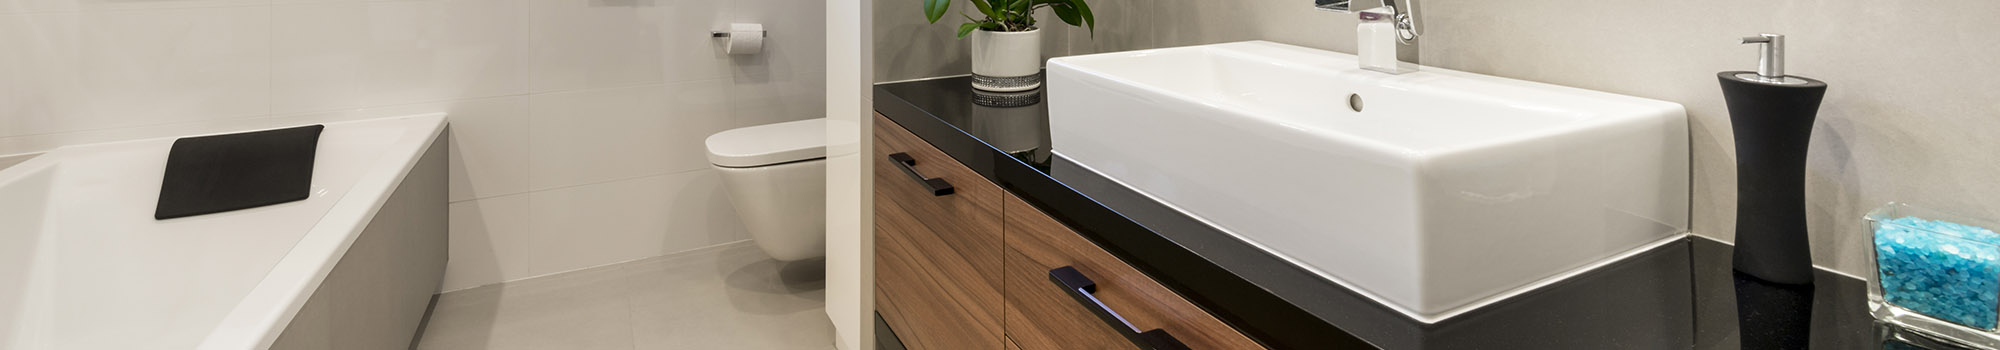 Finance For Bathrooms, Boilers & Plumbing Services